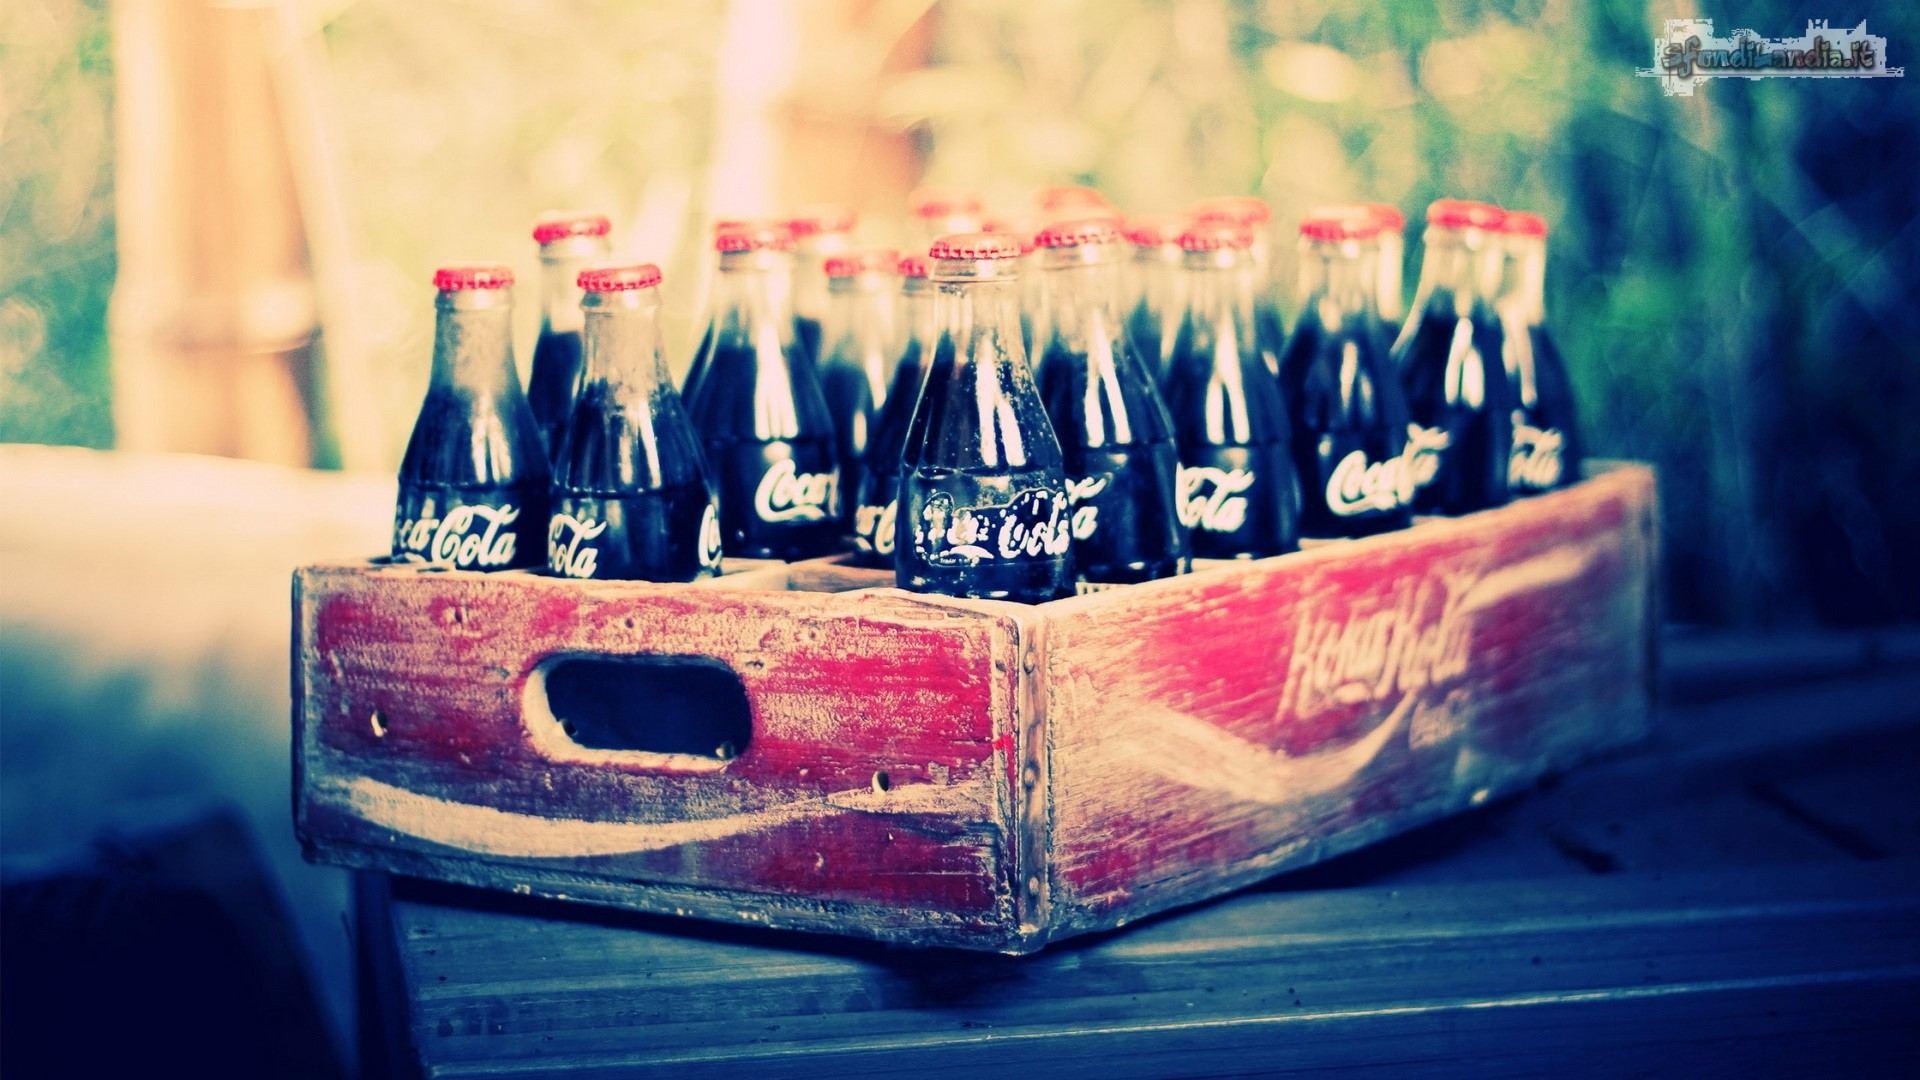 Sfondo gratis di vintage coke per desktop smartphone android e iphone in - Vintage coke wallpaper ...